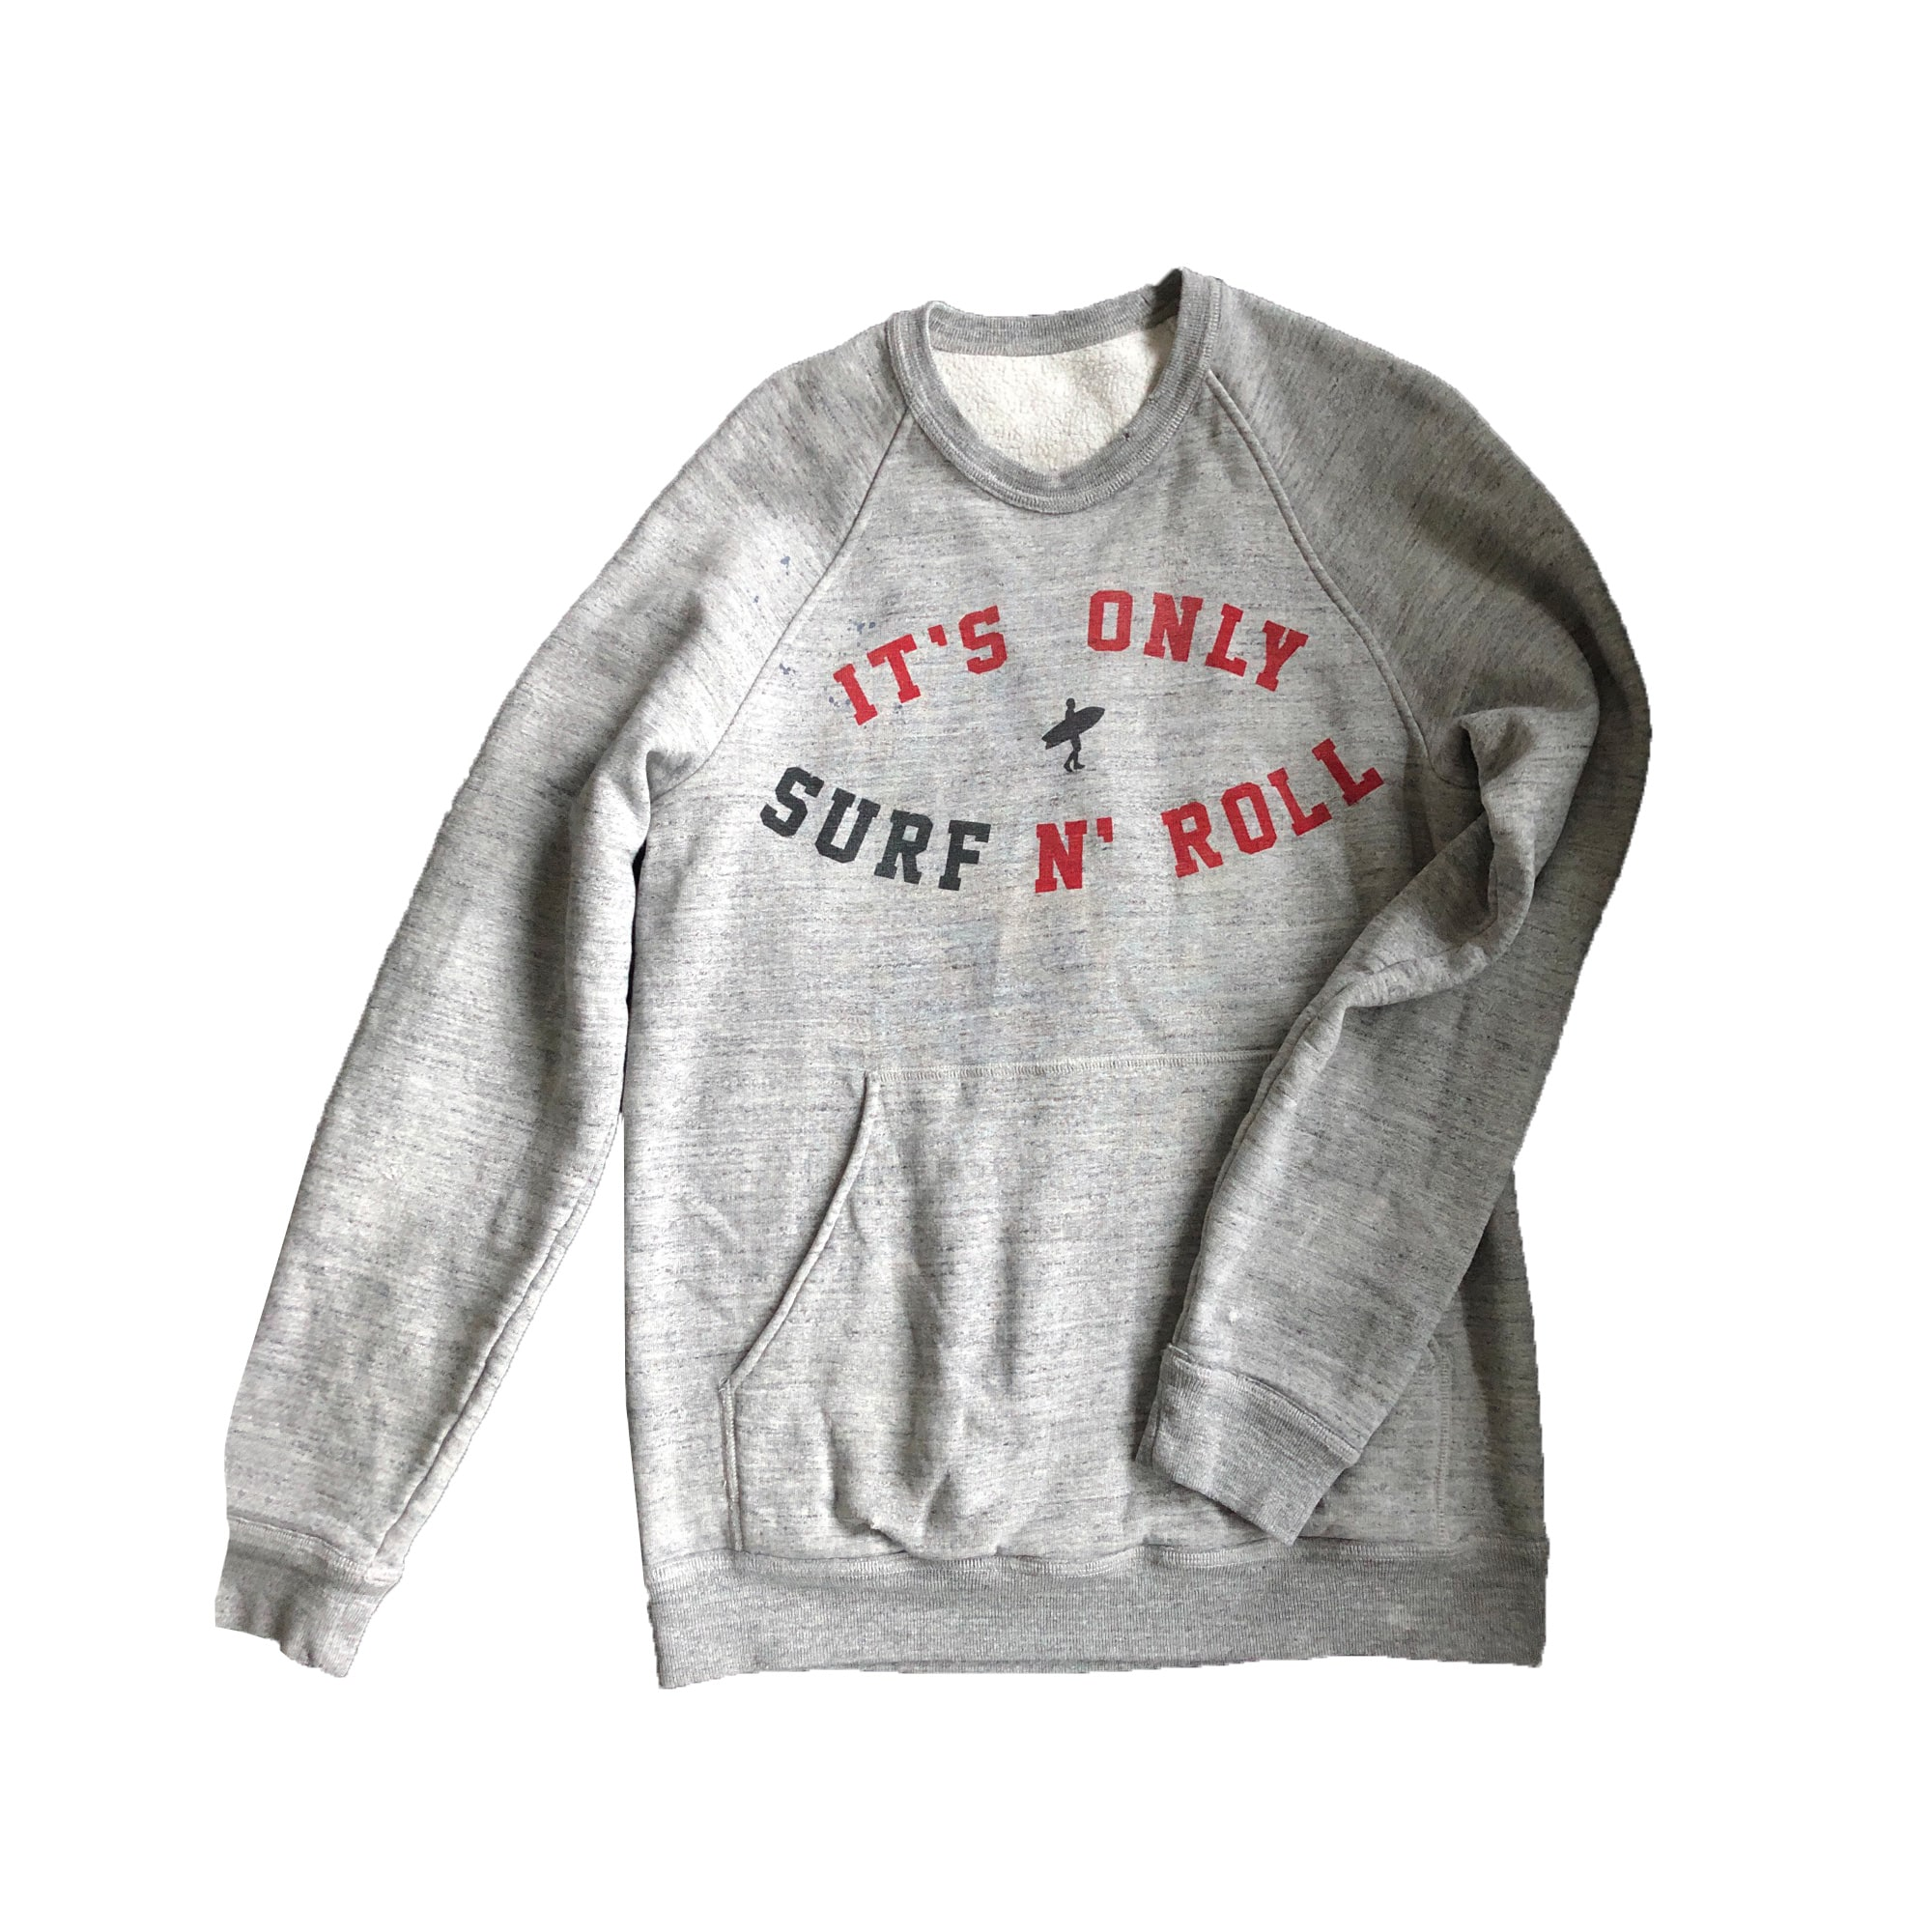 Sweatshirt DSQUARED2 Gray, charcoal